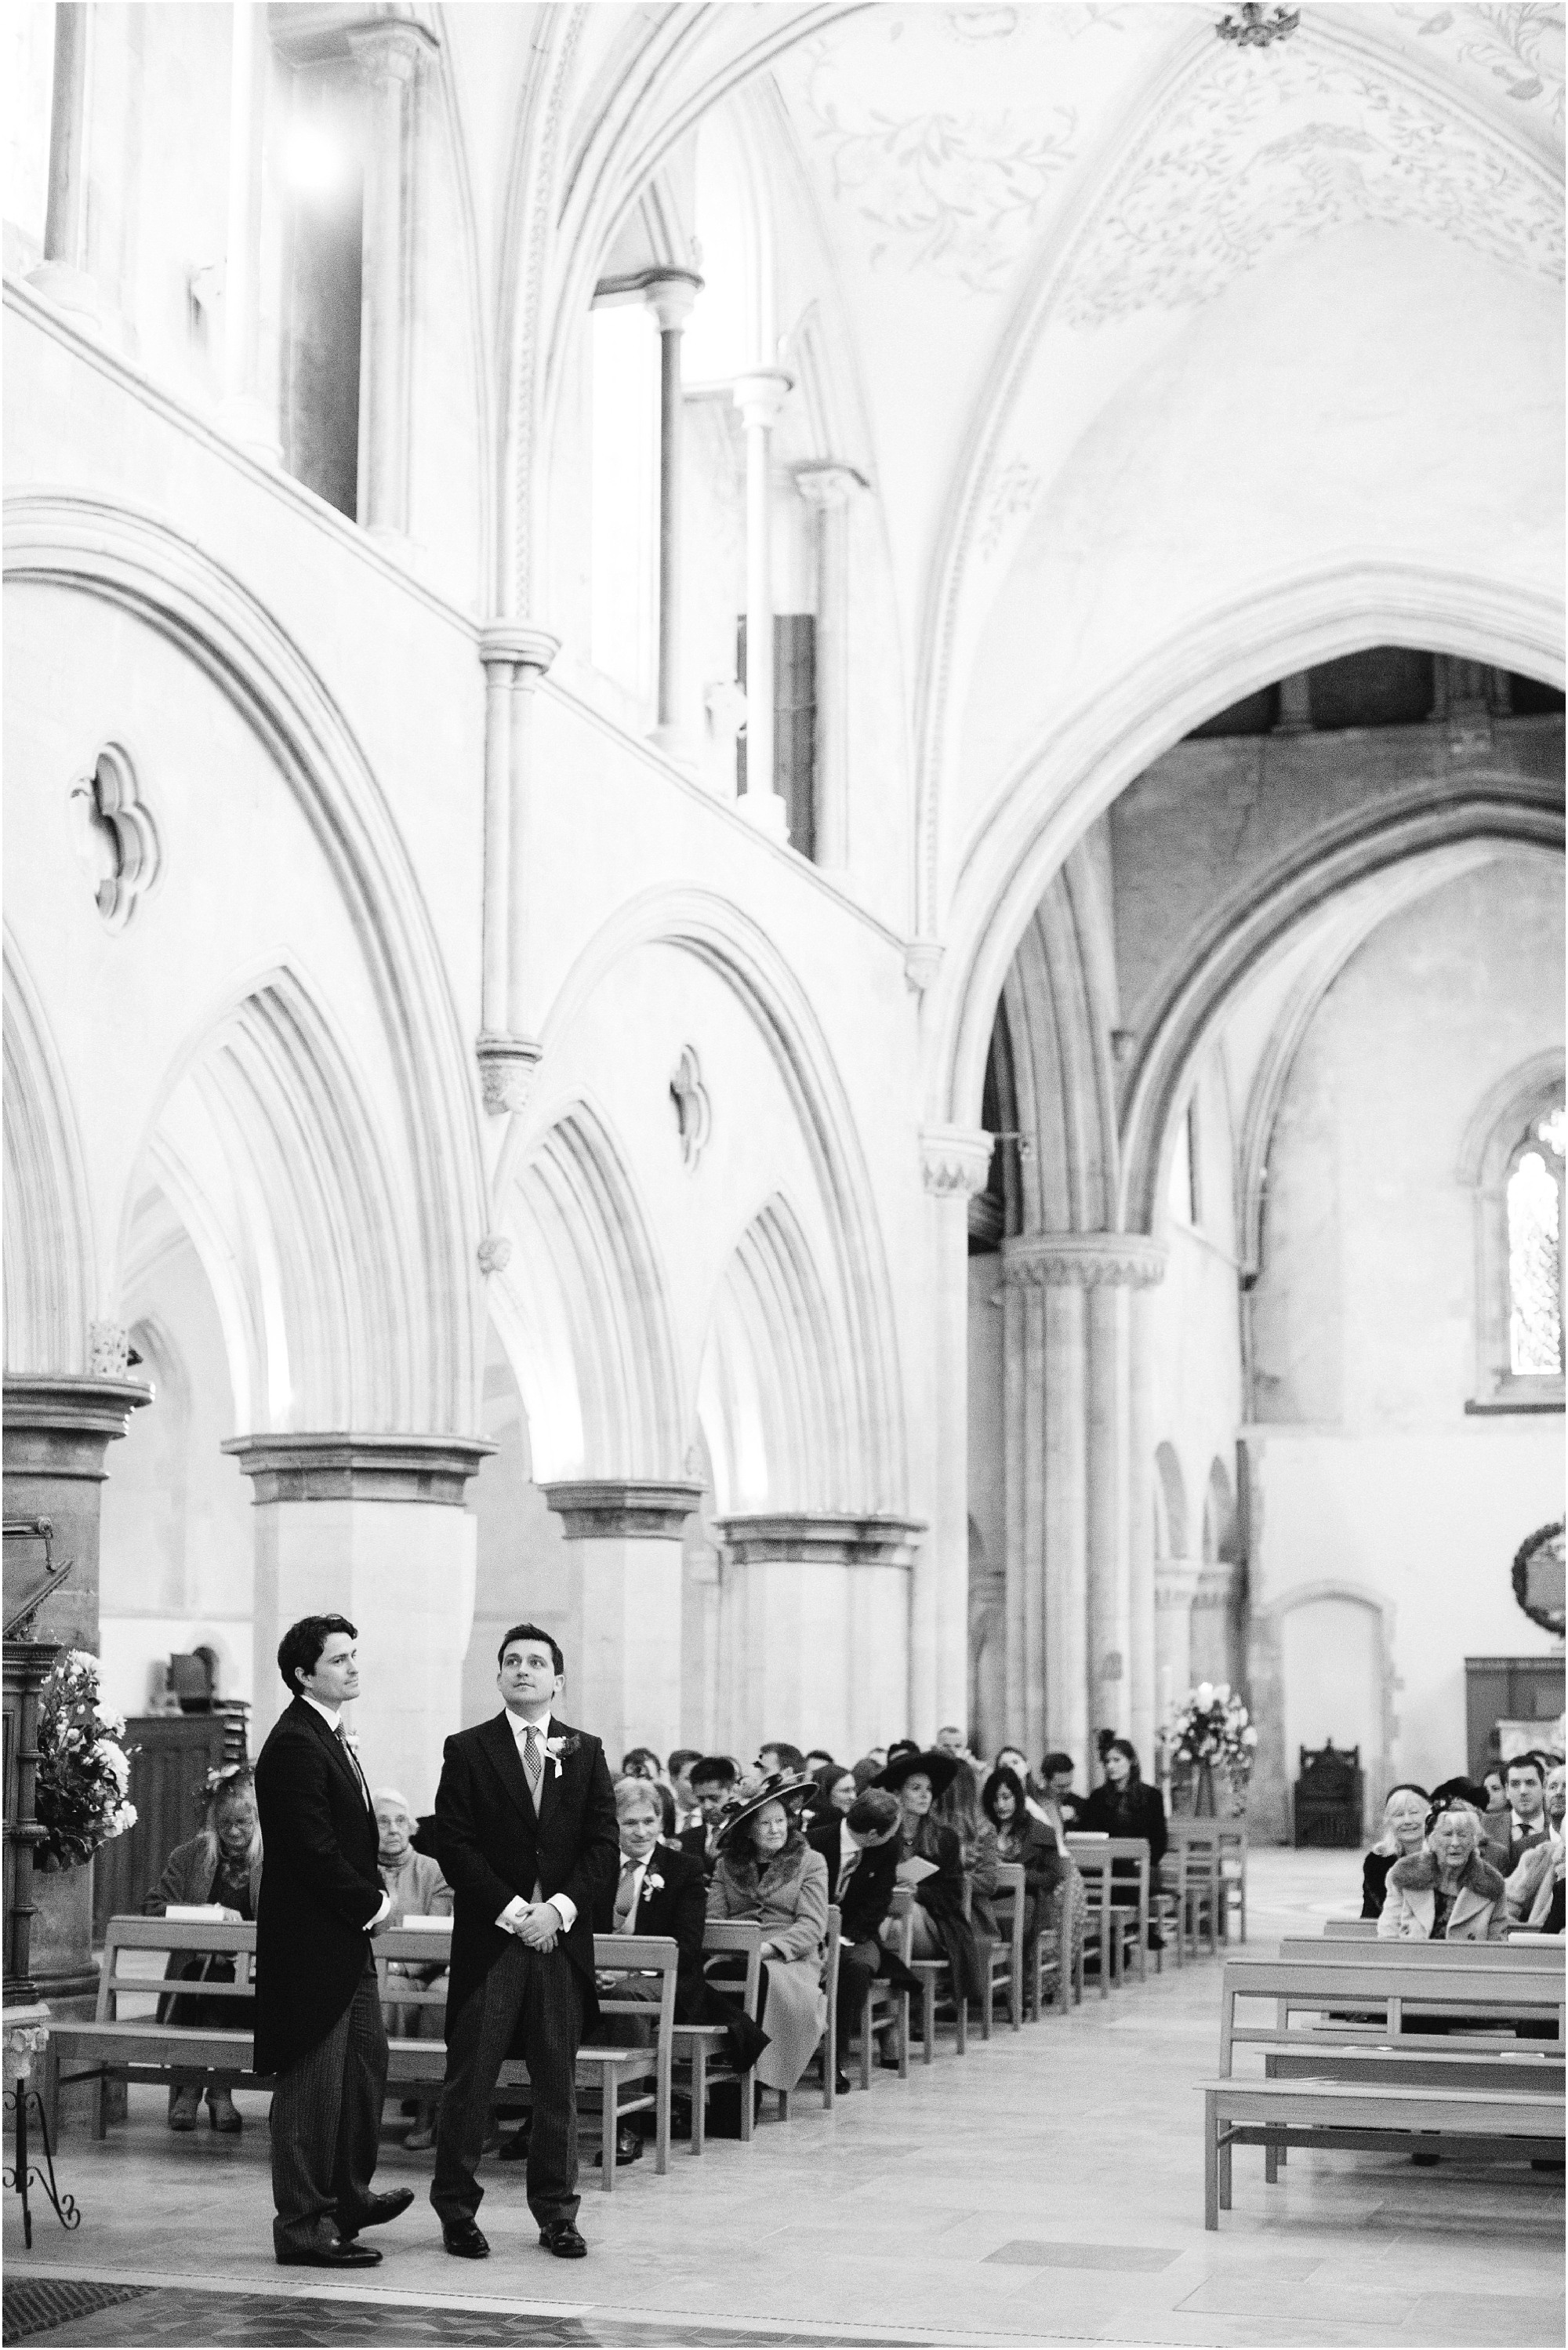 Groom and best man at front of church